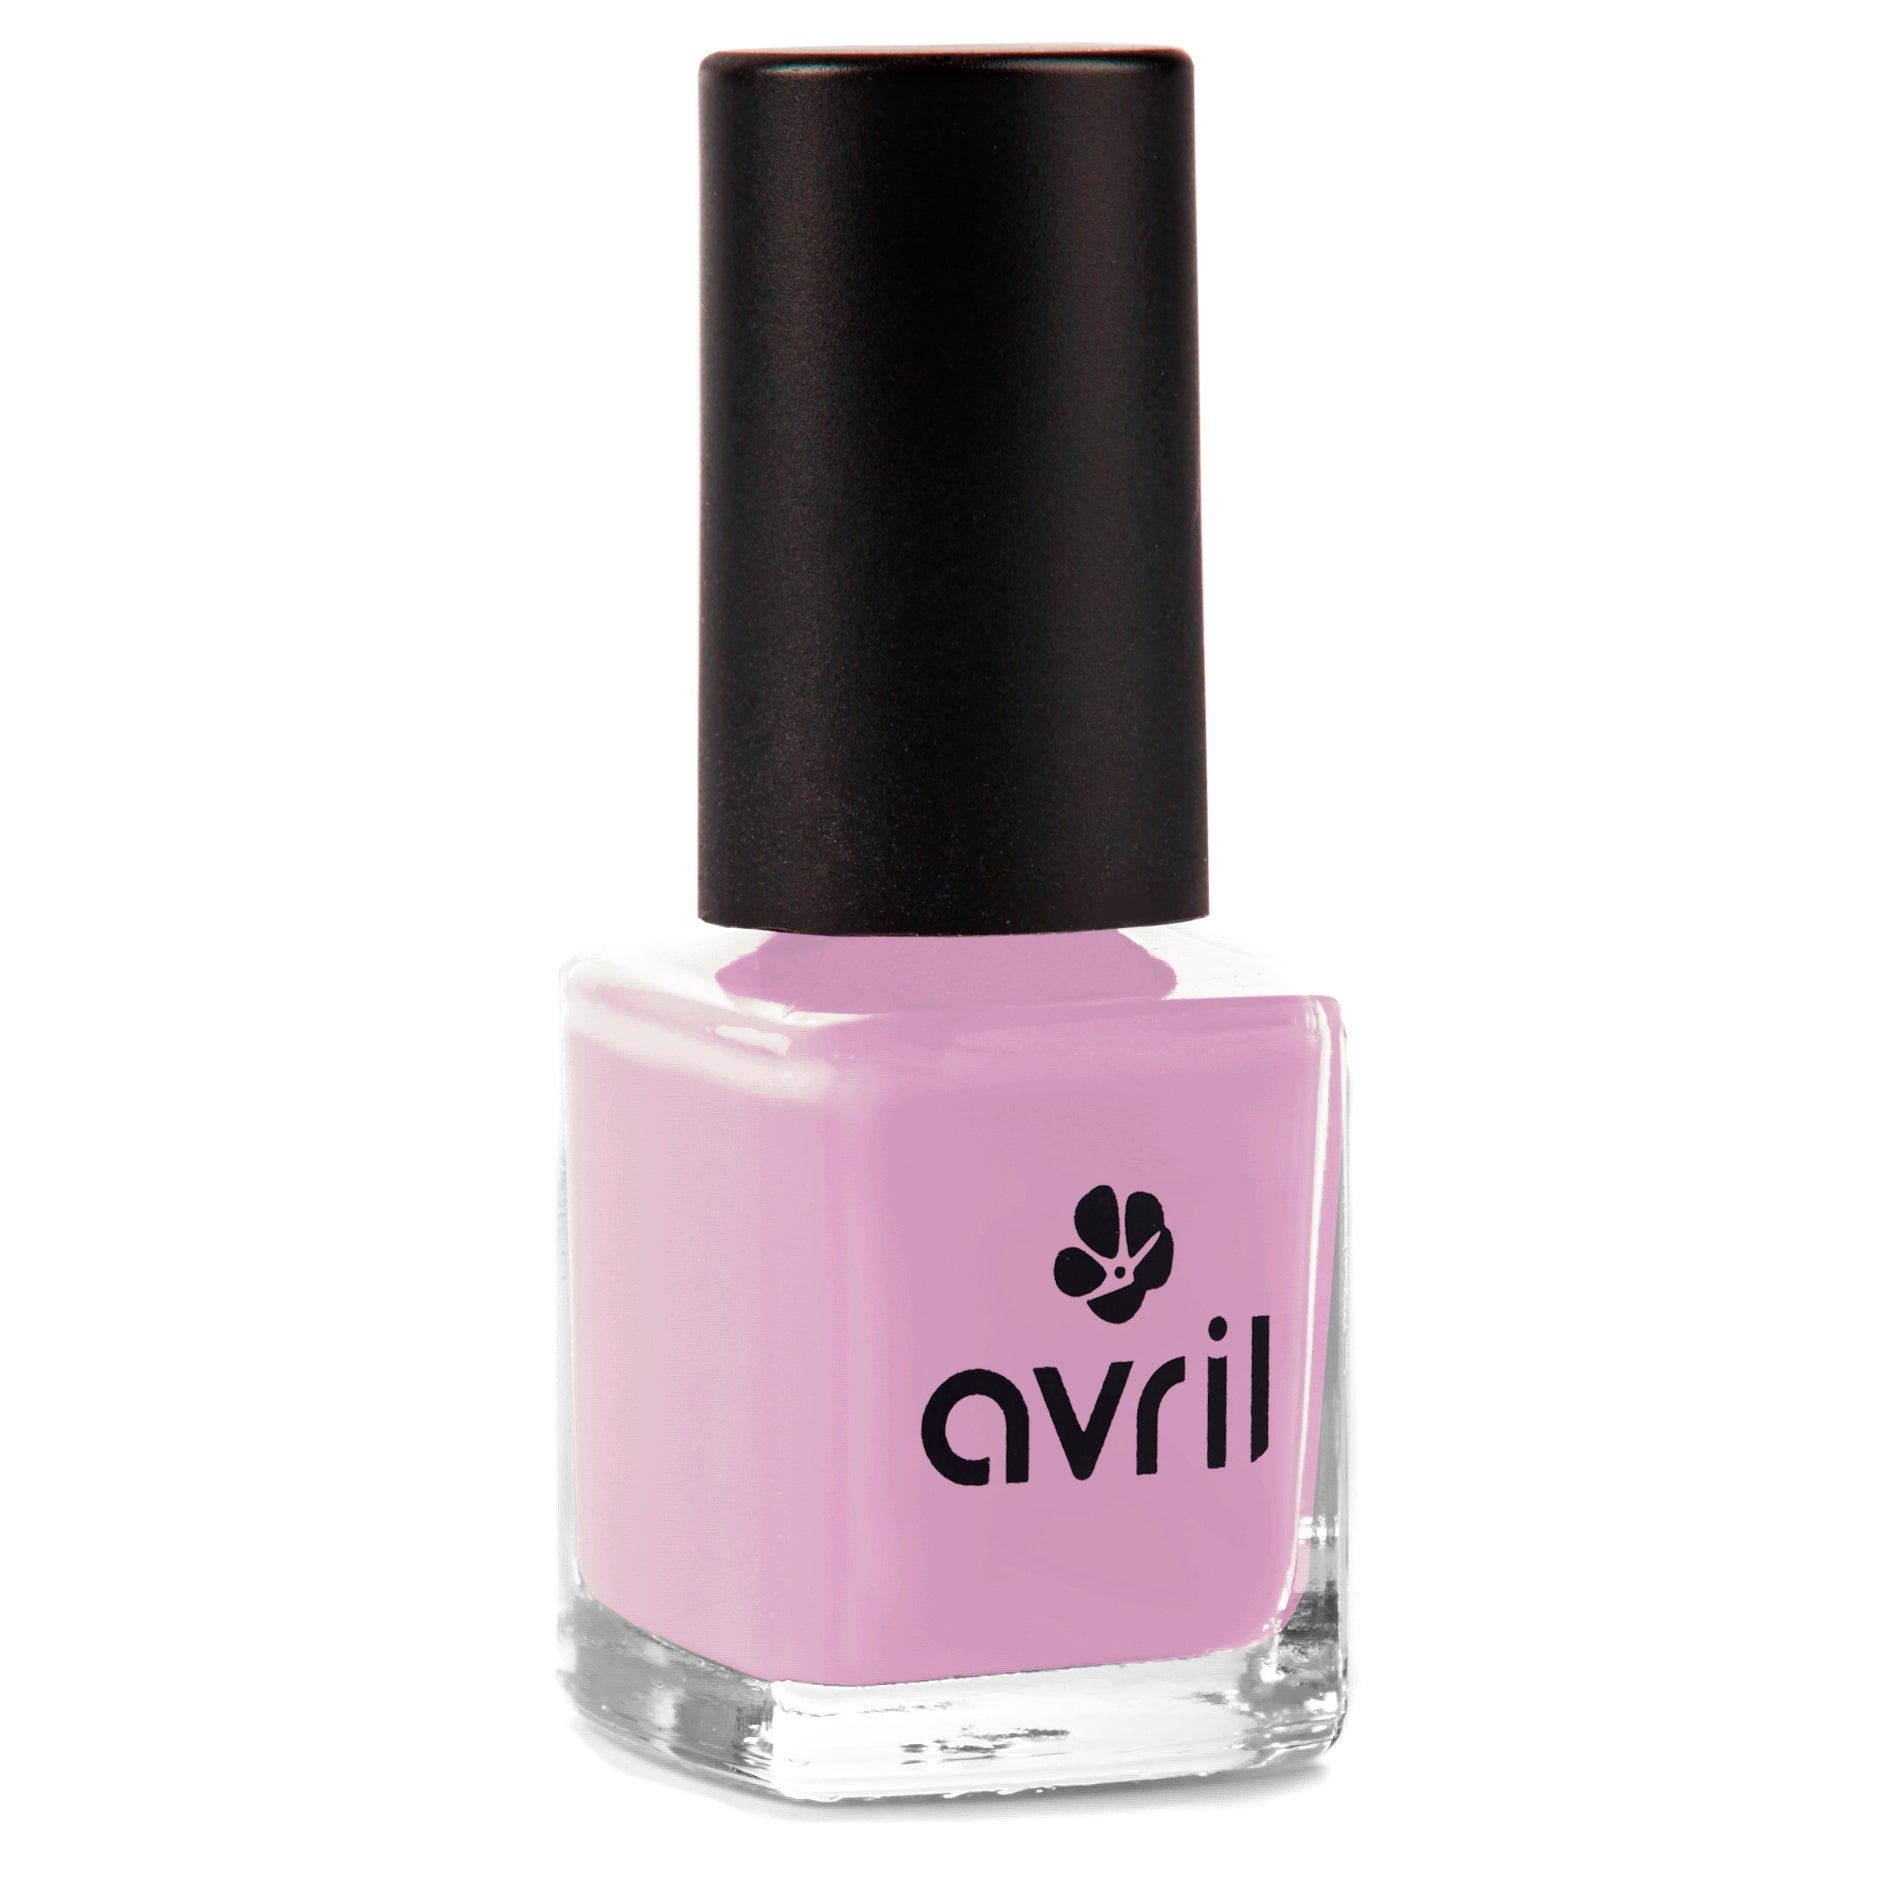 AVRIL 天然指甲油 (PARME N° 71) | AVRIL Natural Nail Polish (PARME N° 71)